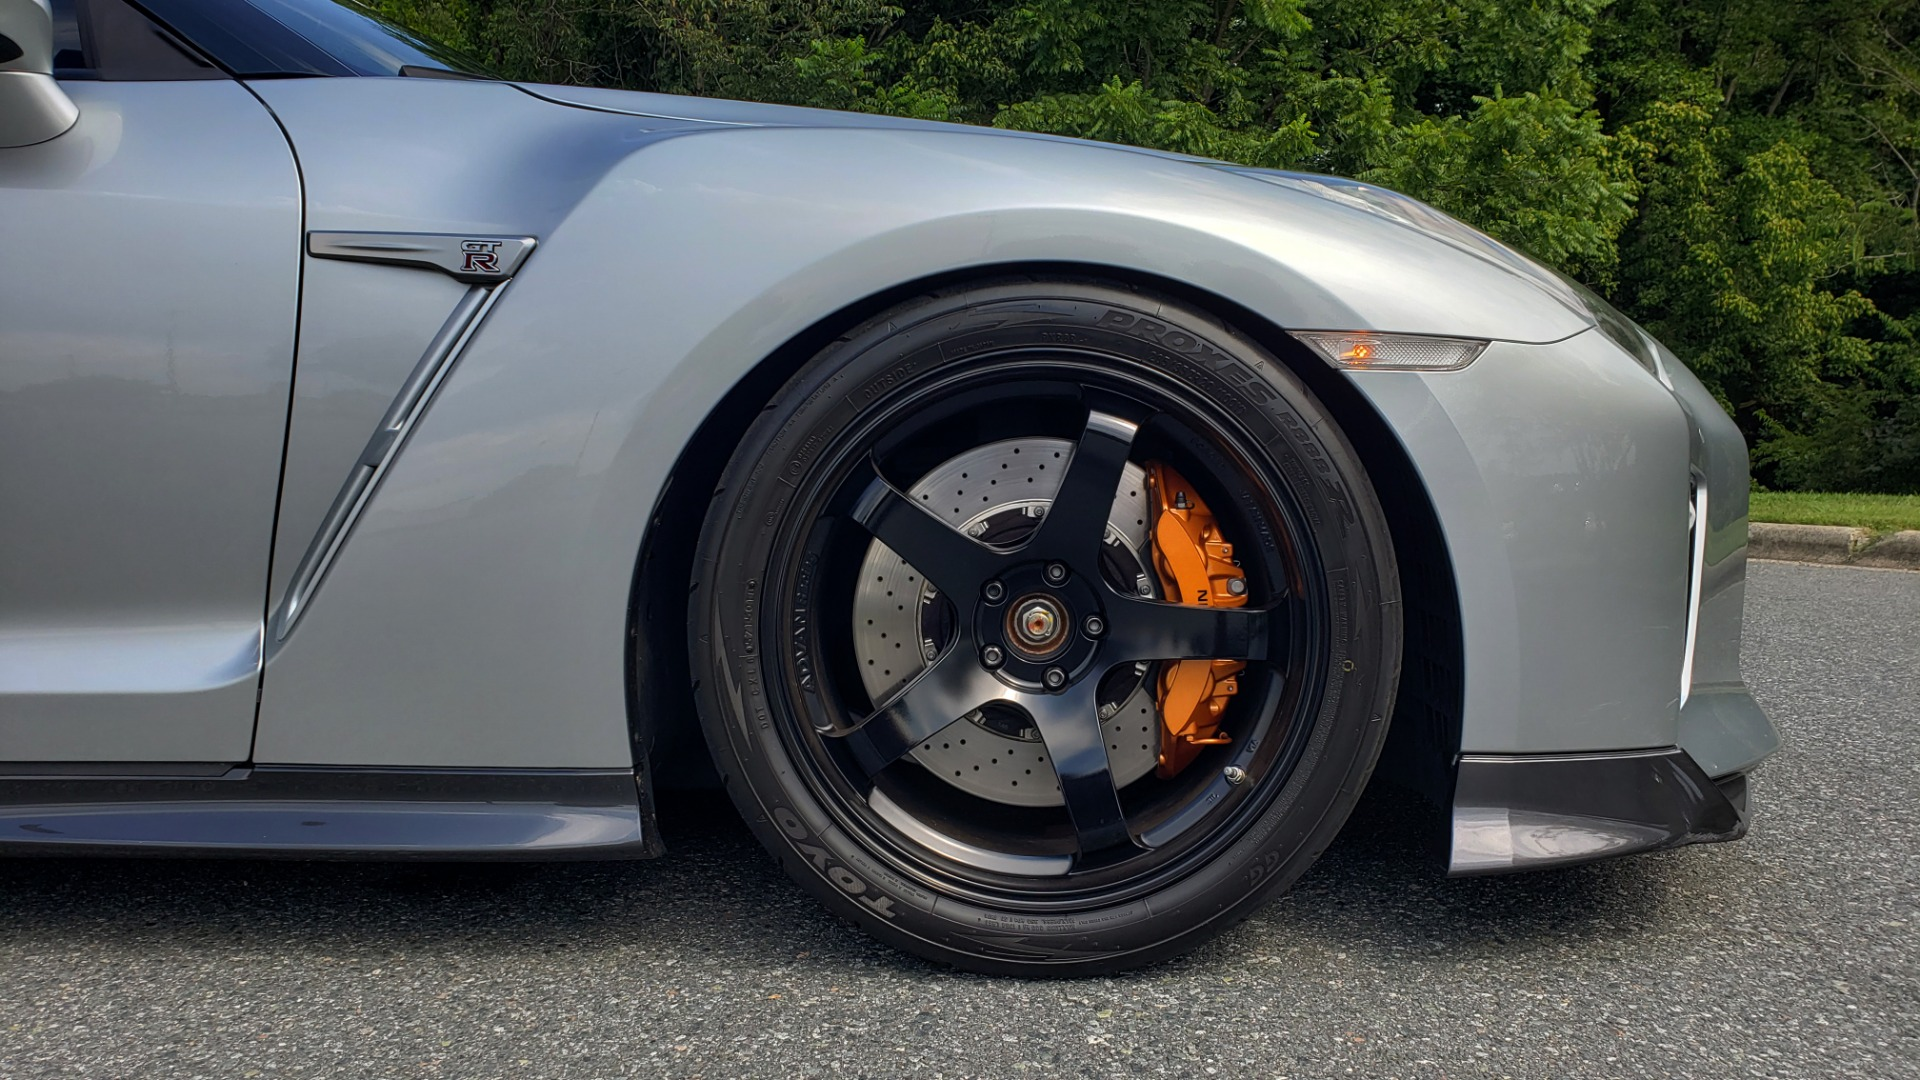 Used 2018 Nissan GT-R PREMIUM / NAV / BOSE / REARVIEW / CUSTOM WHEELS / COIL OVER SHOCKS / TUNED for sale Sold at Formula Imports in Charlotte NC 28227 73